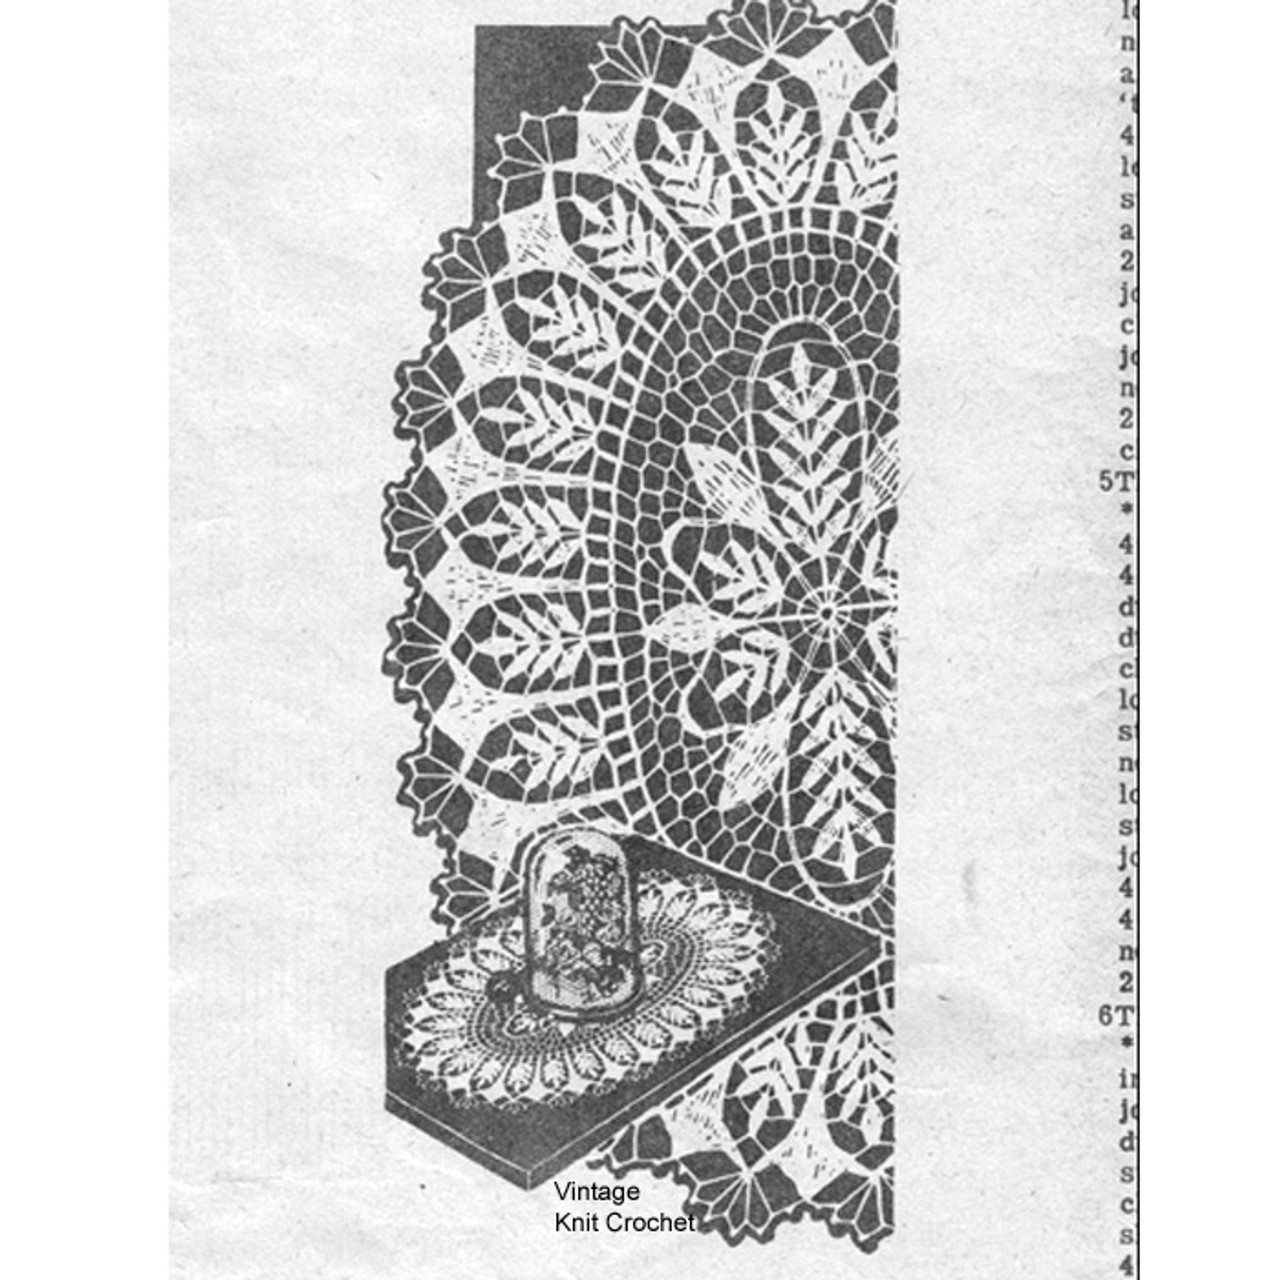 Oval Crochet Doilies in Fern Motif, Pattern Design 793